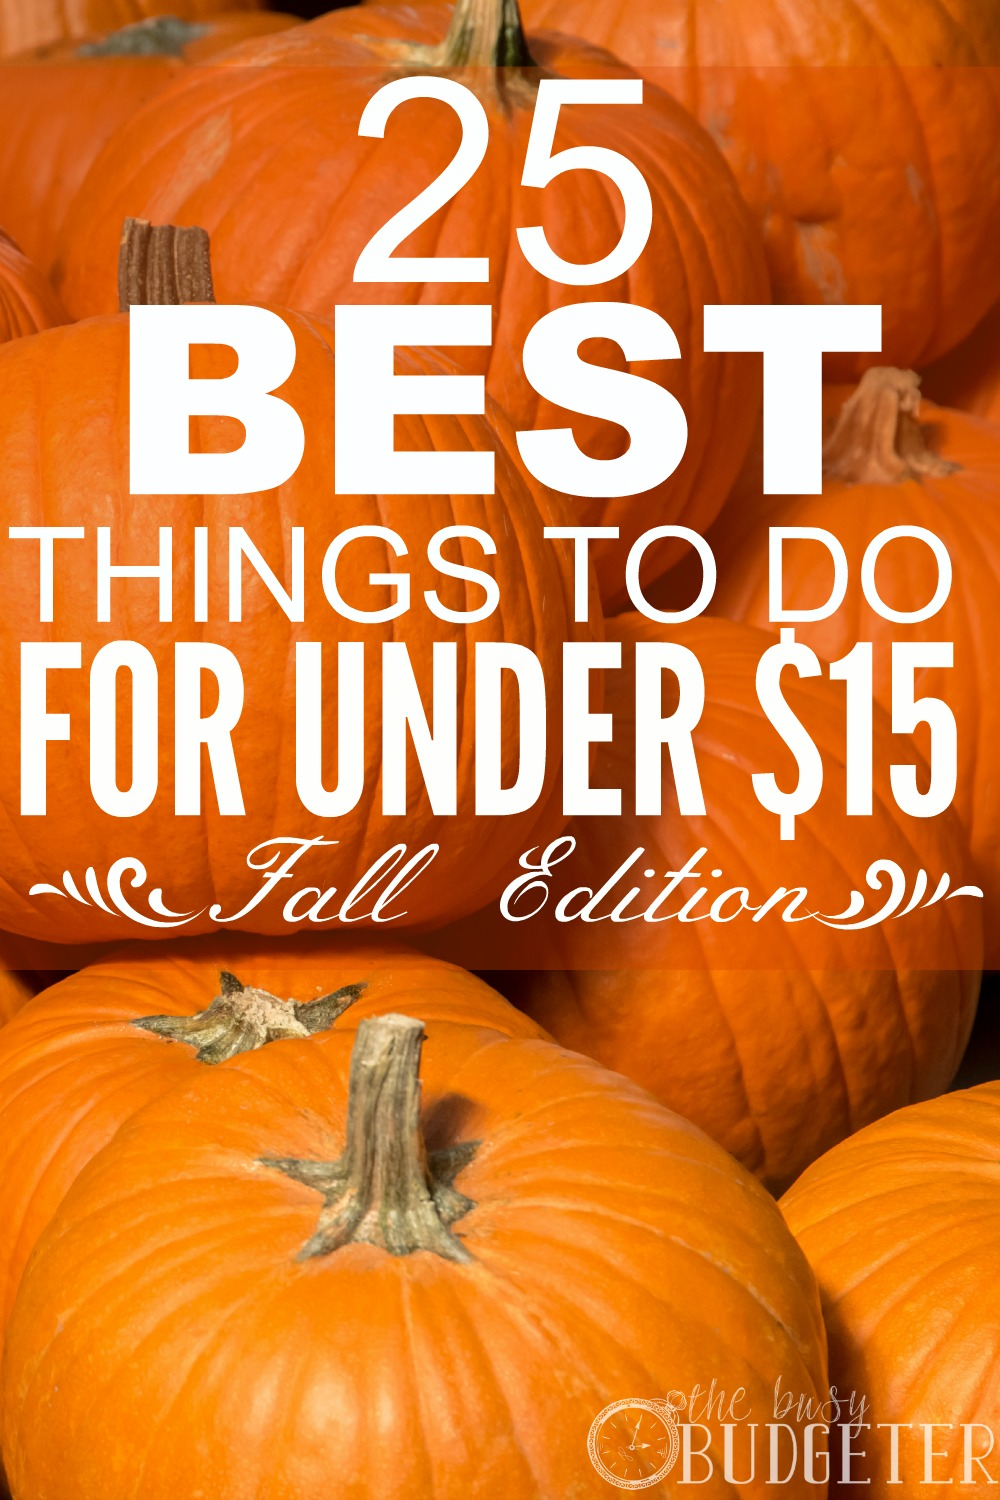 The 25 Best Things To Do For Under 15 Dollars...